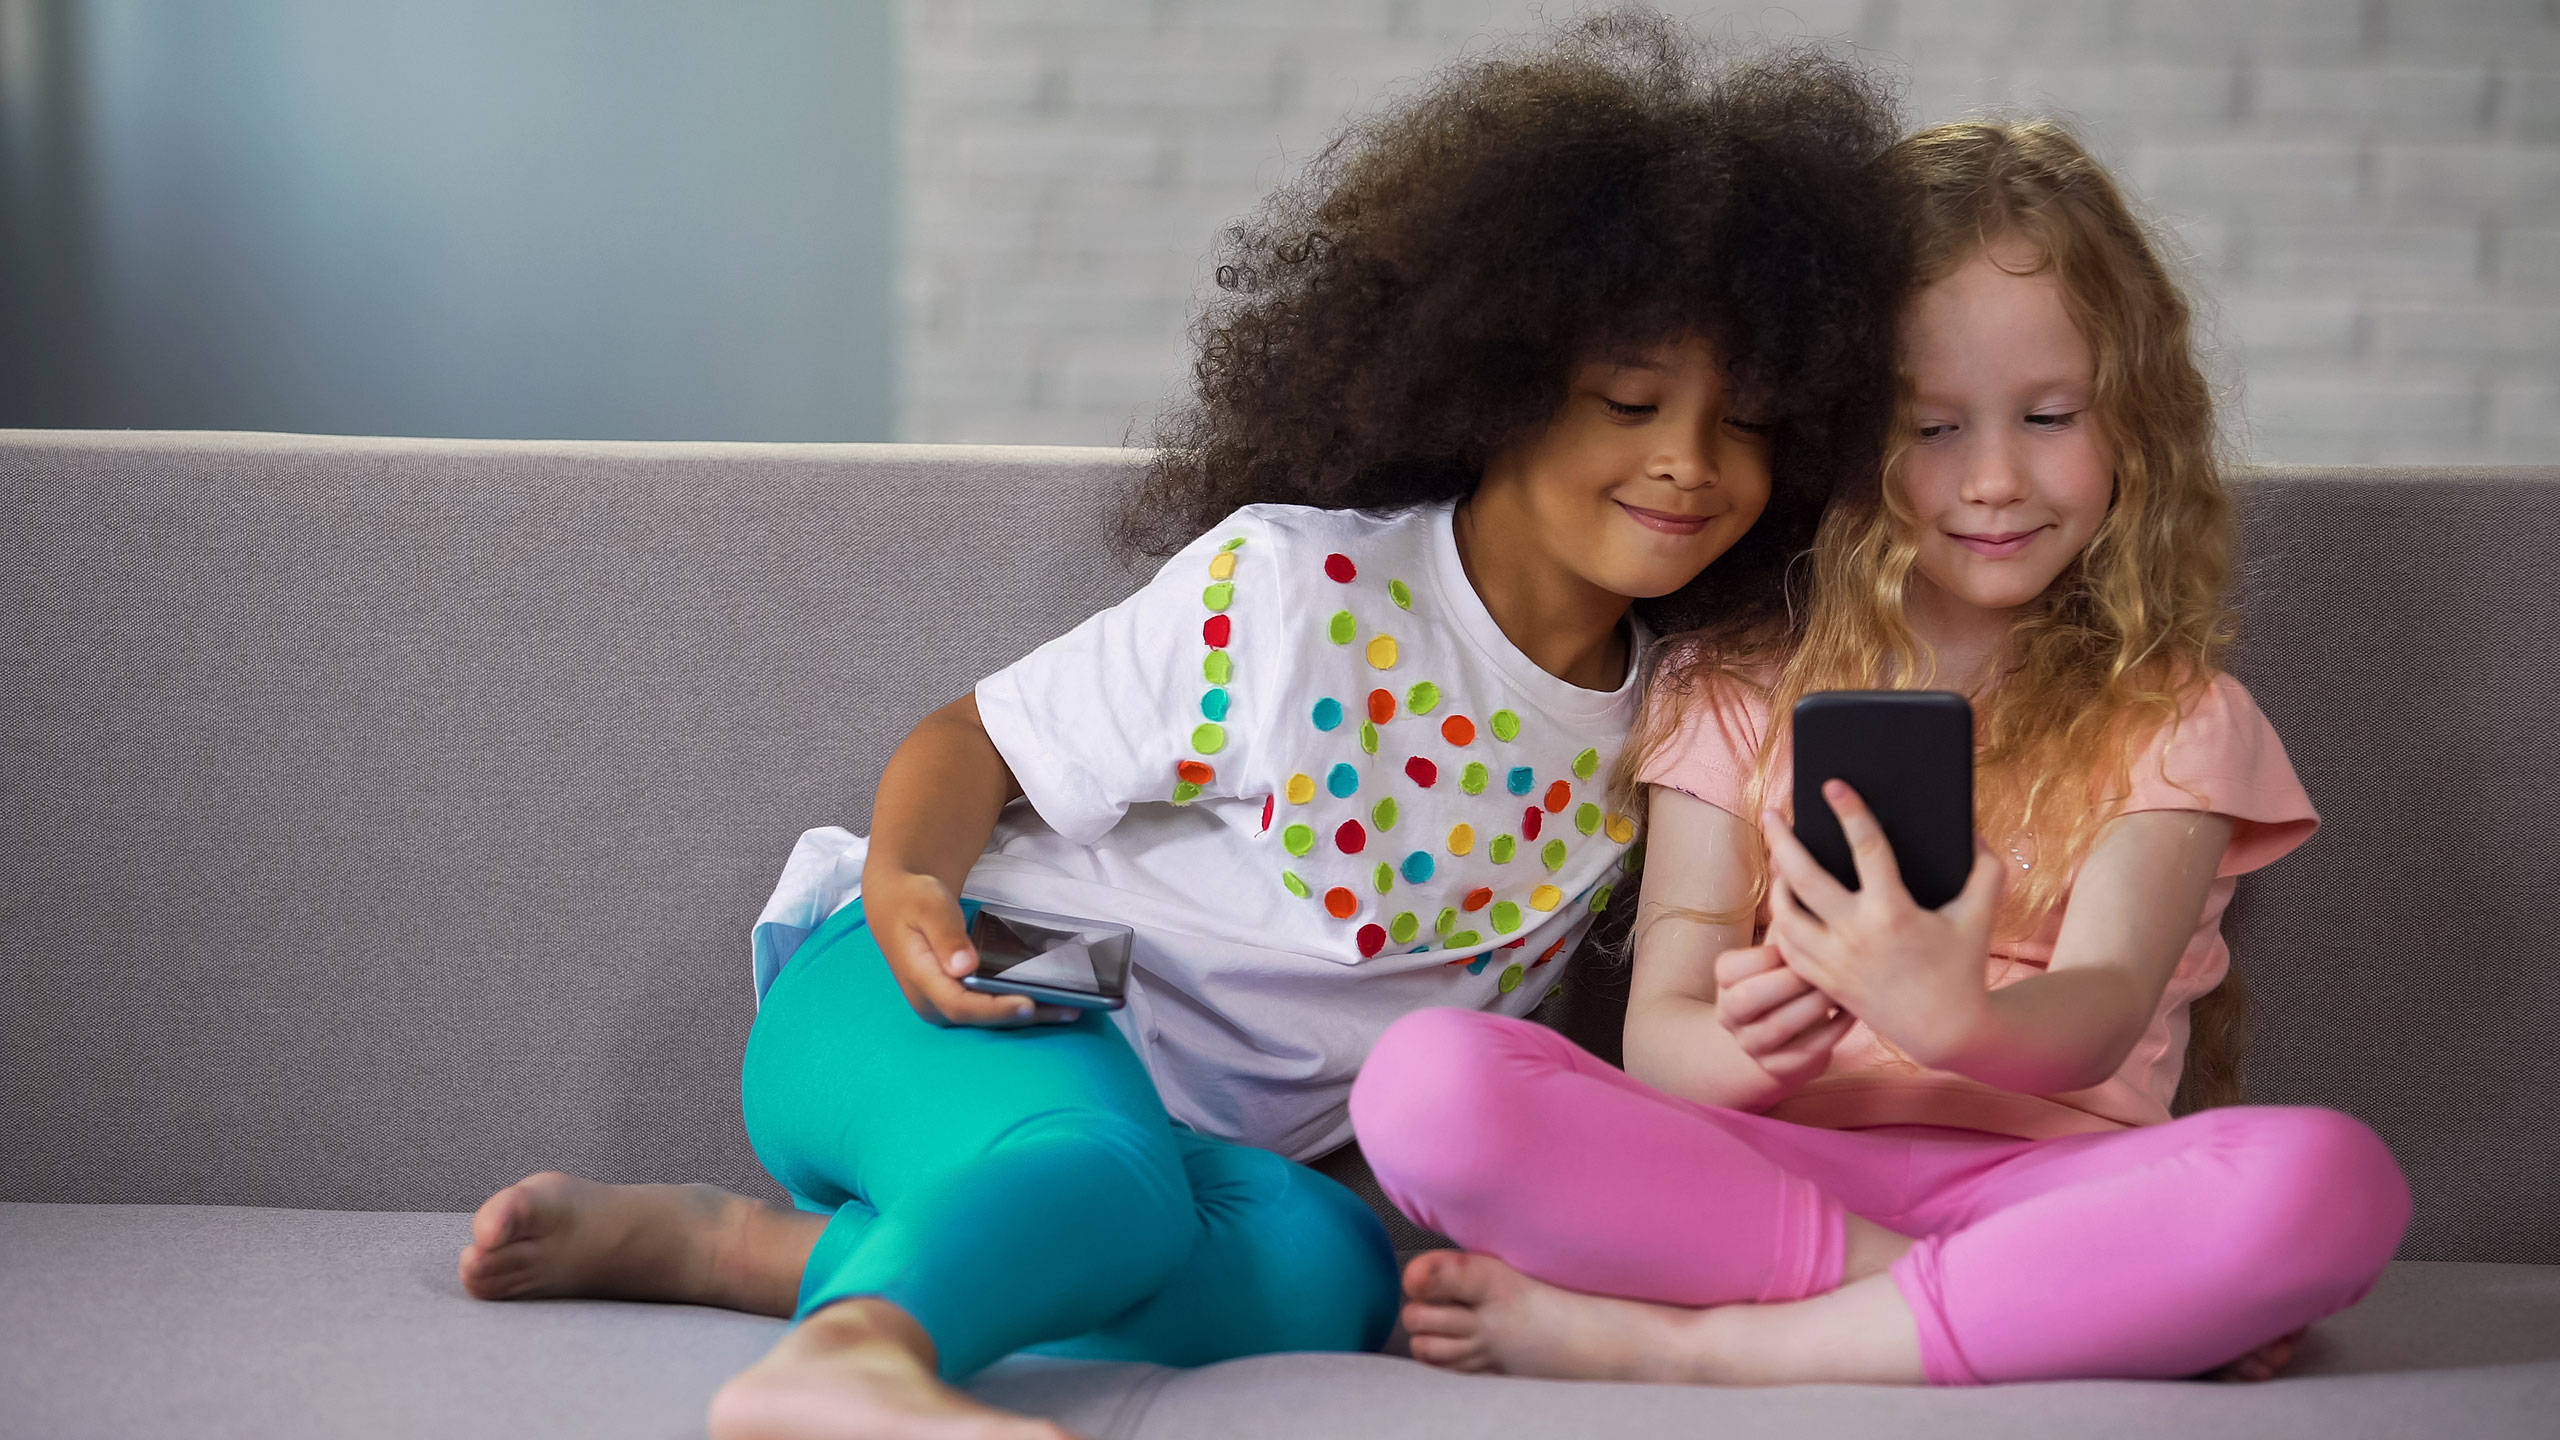 Kids with Gadgets; Courtesy of Motortion Films/Shutterstock.com